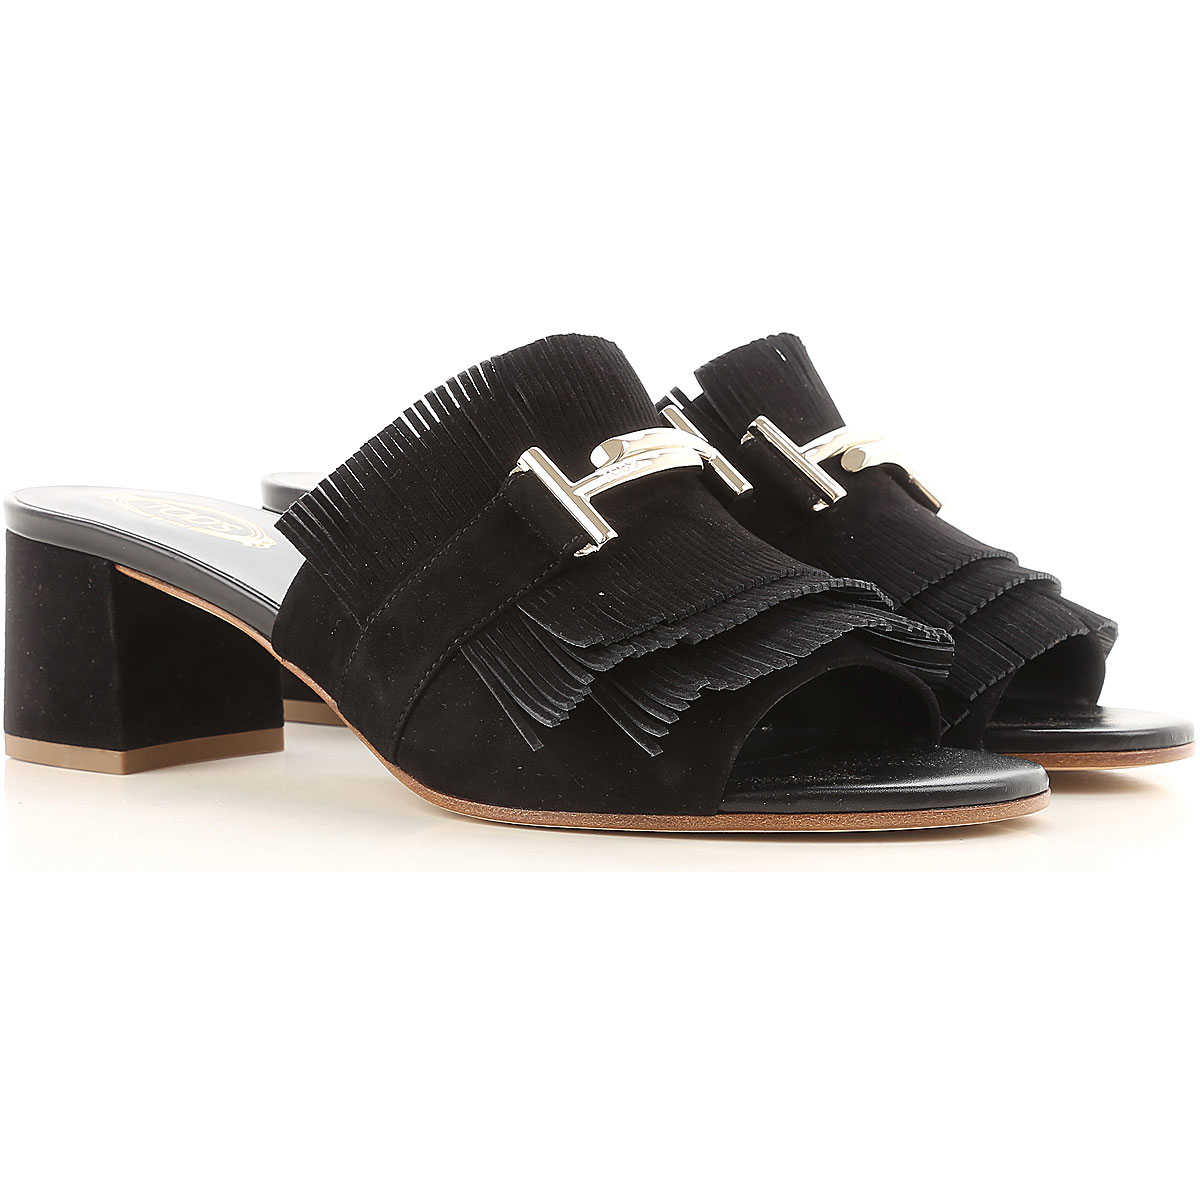 Tods Womens Shoes